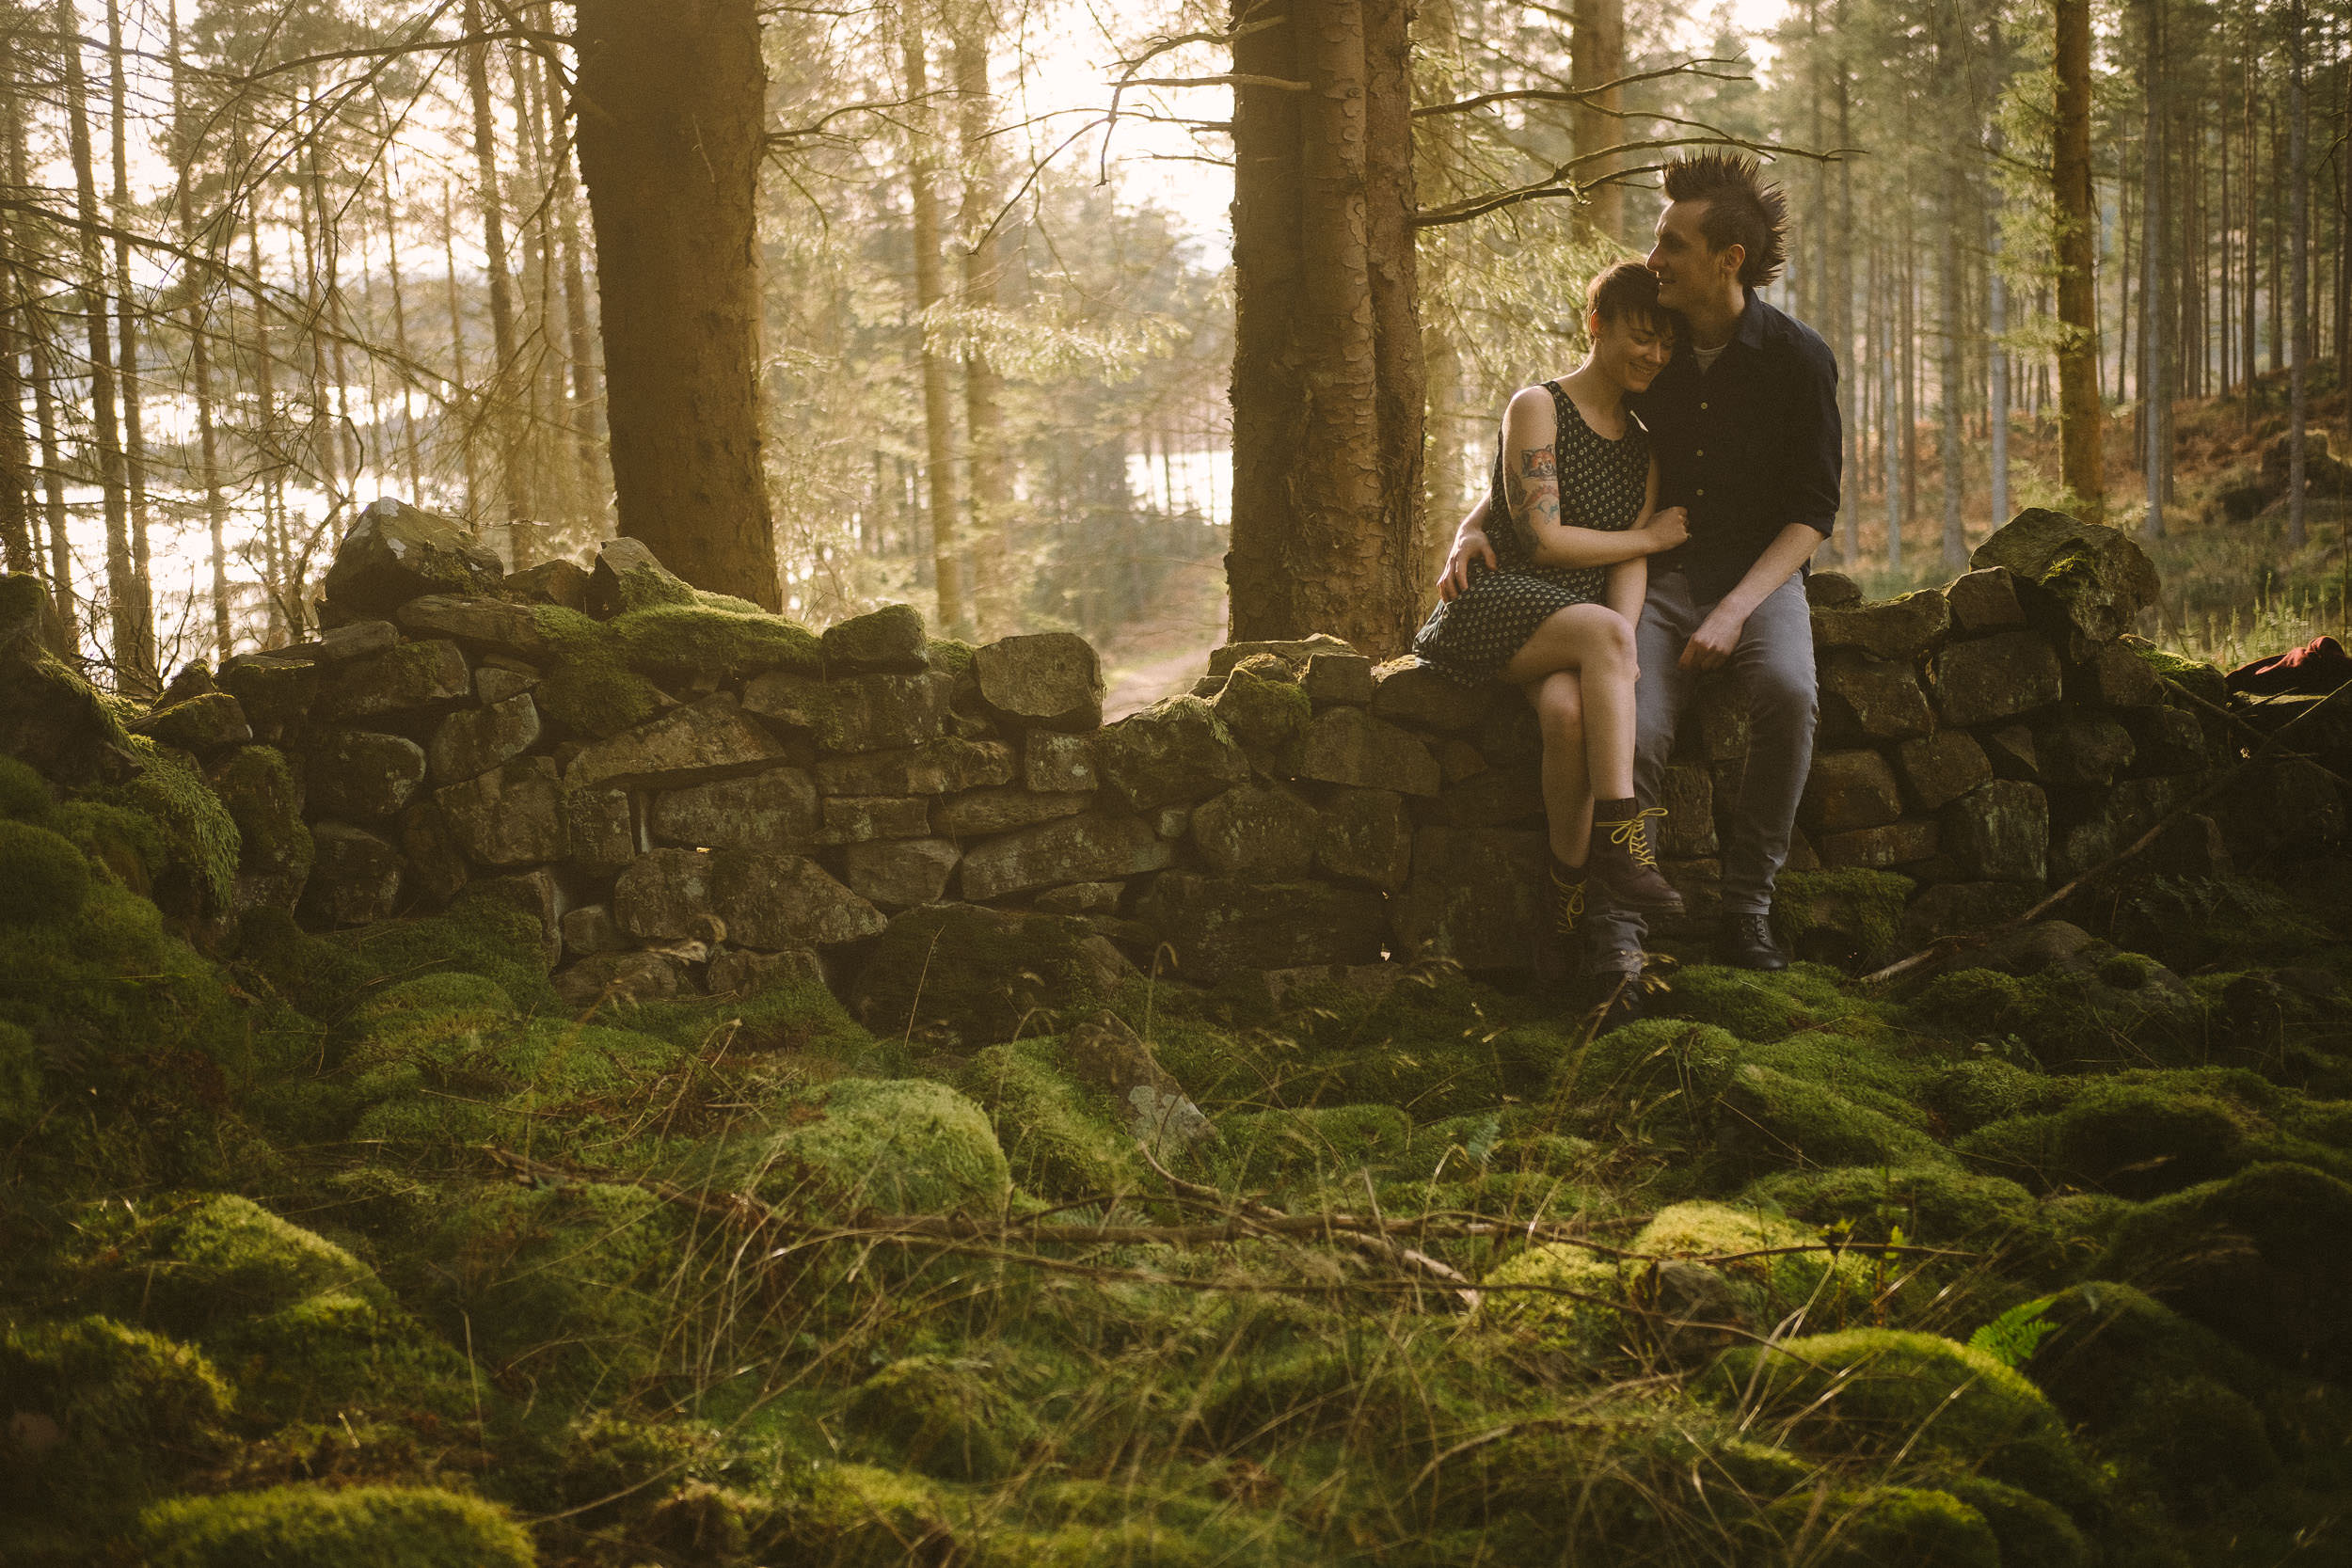 Couple cuddle while sitting on ruined wall in Kielder forest